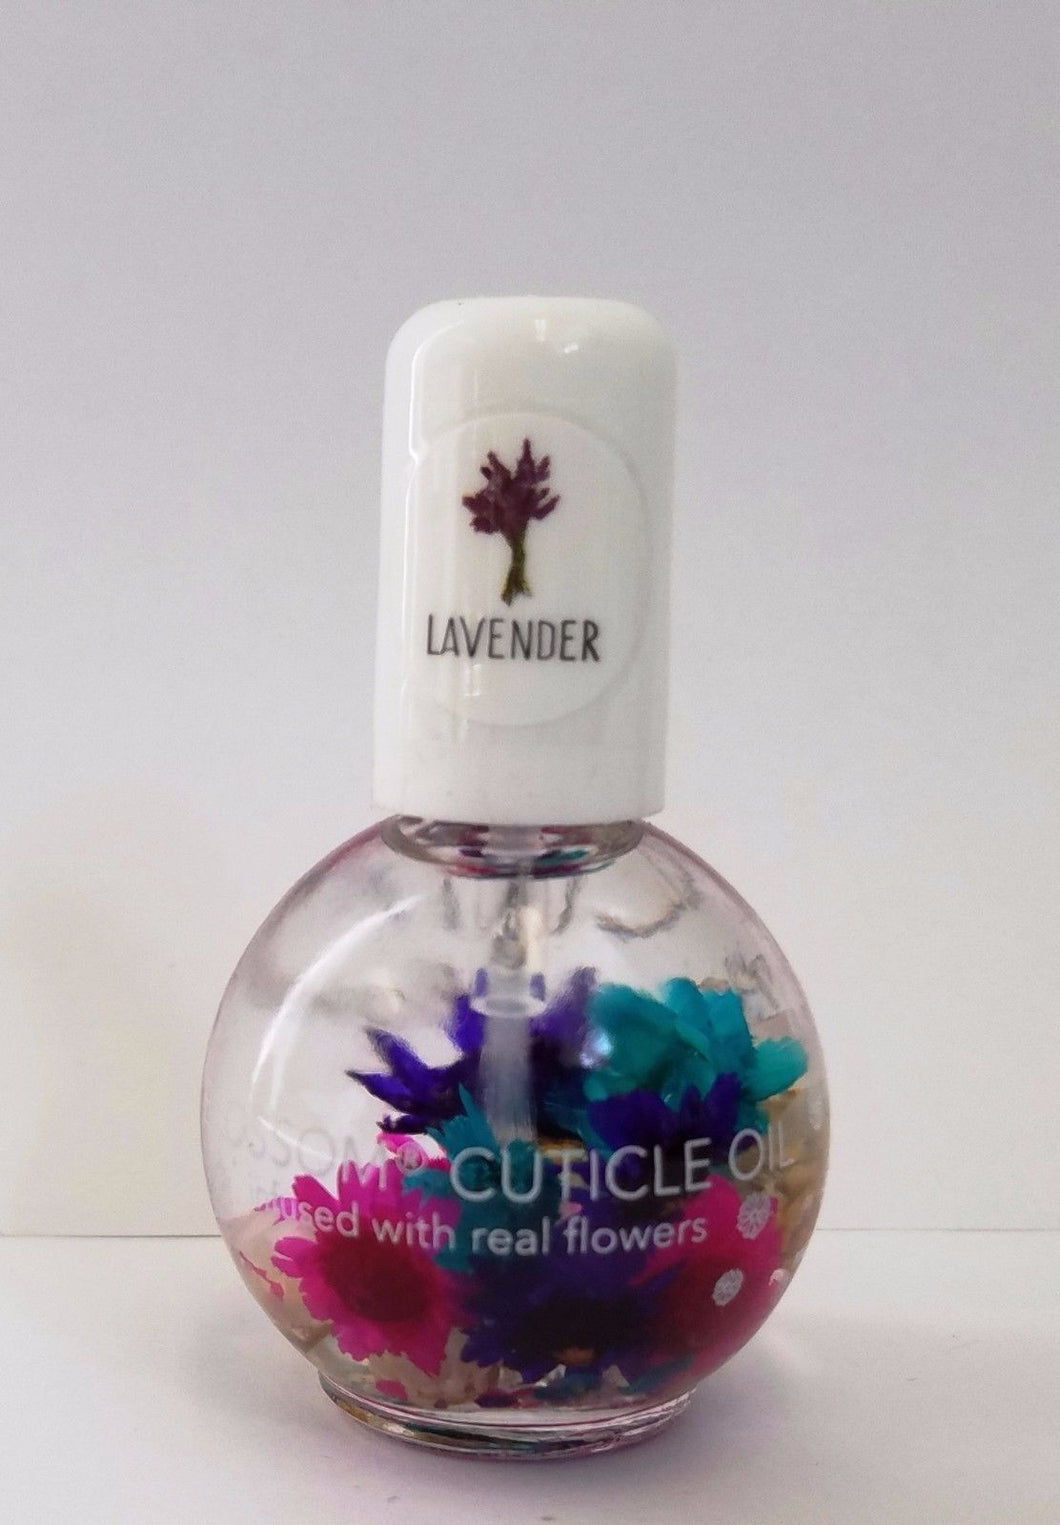 Blossom Cuticle Oil with Real Flowers 0.5oz - LAVENDER